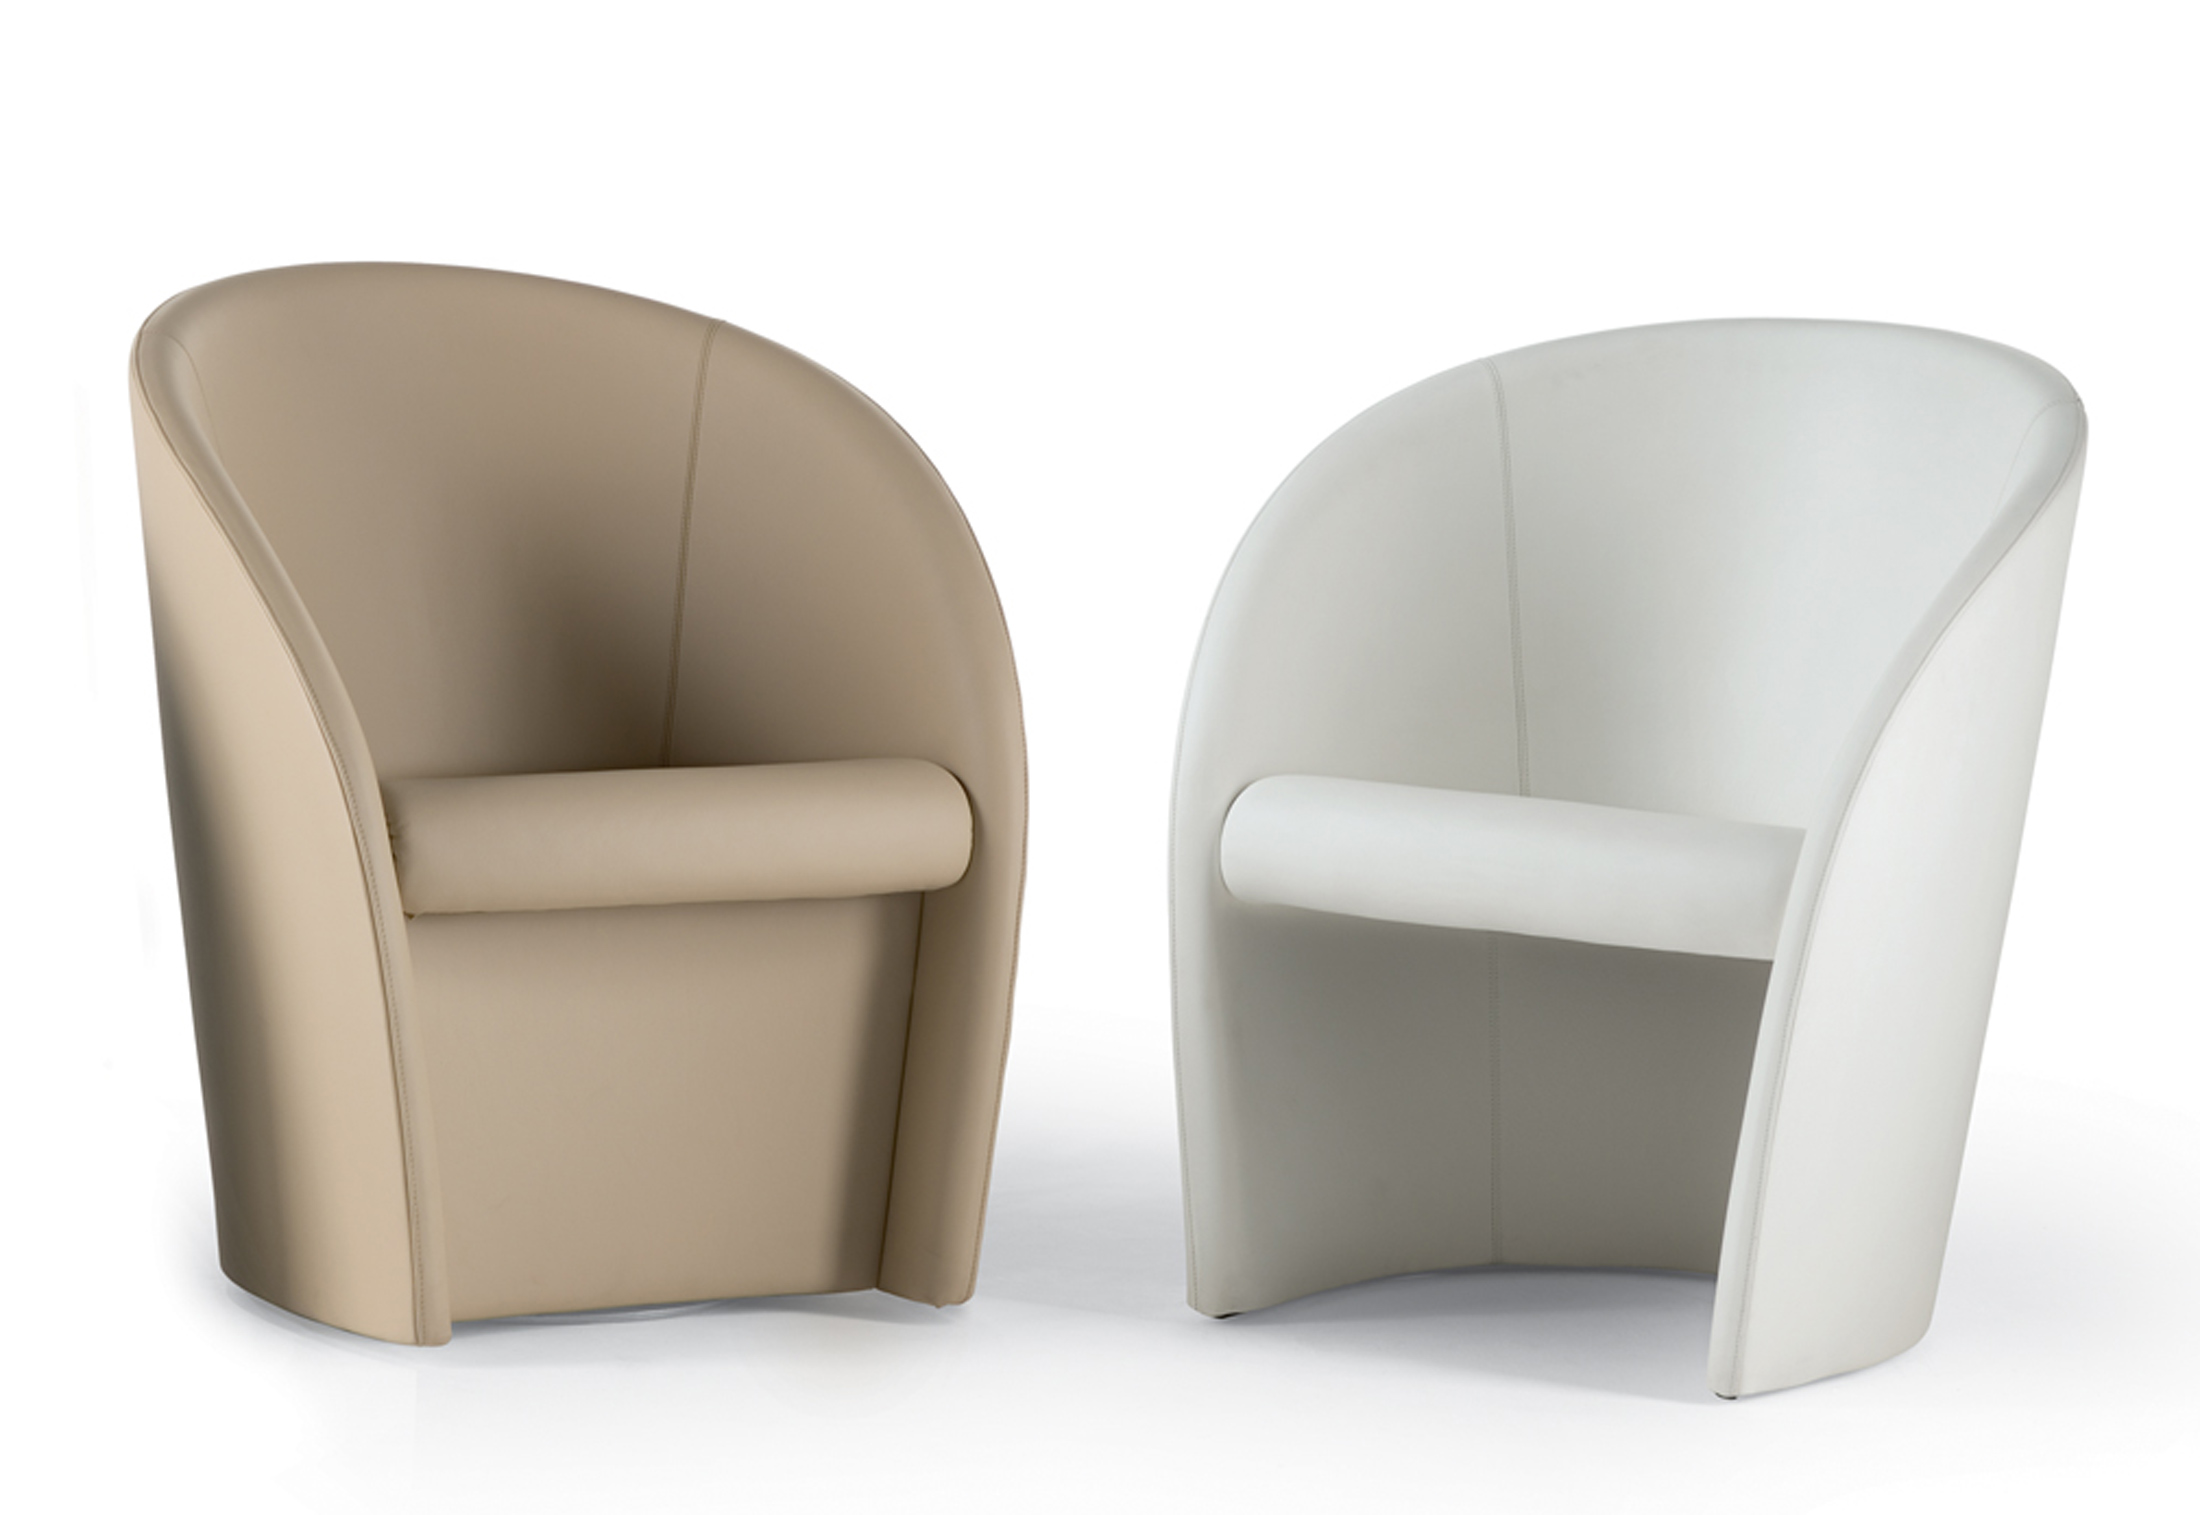 Interviste swivel armchair by Poltrona Frau | STYLEPARK